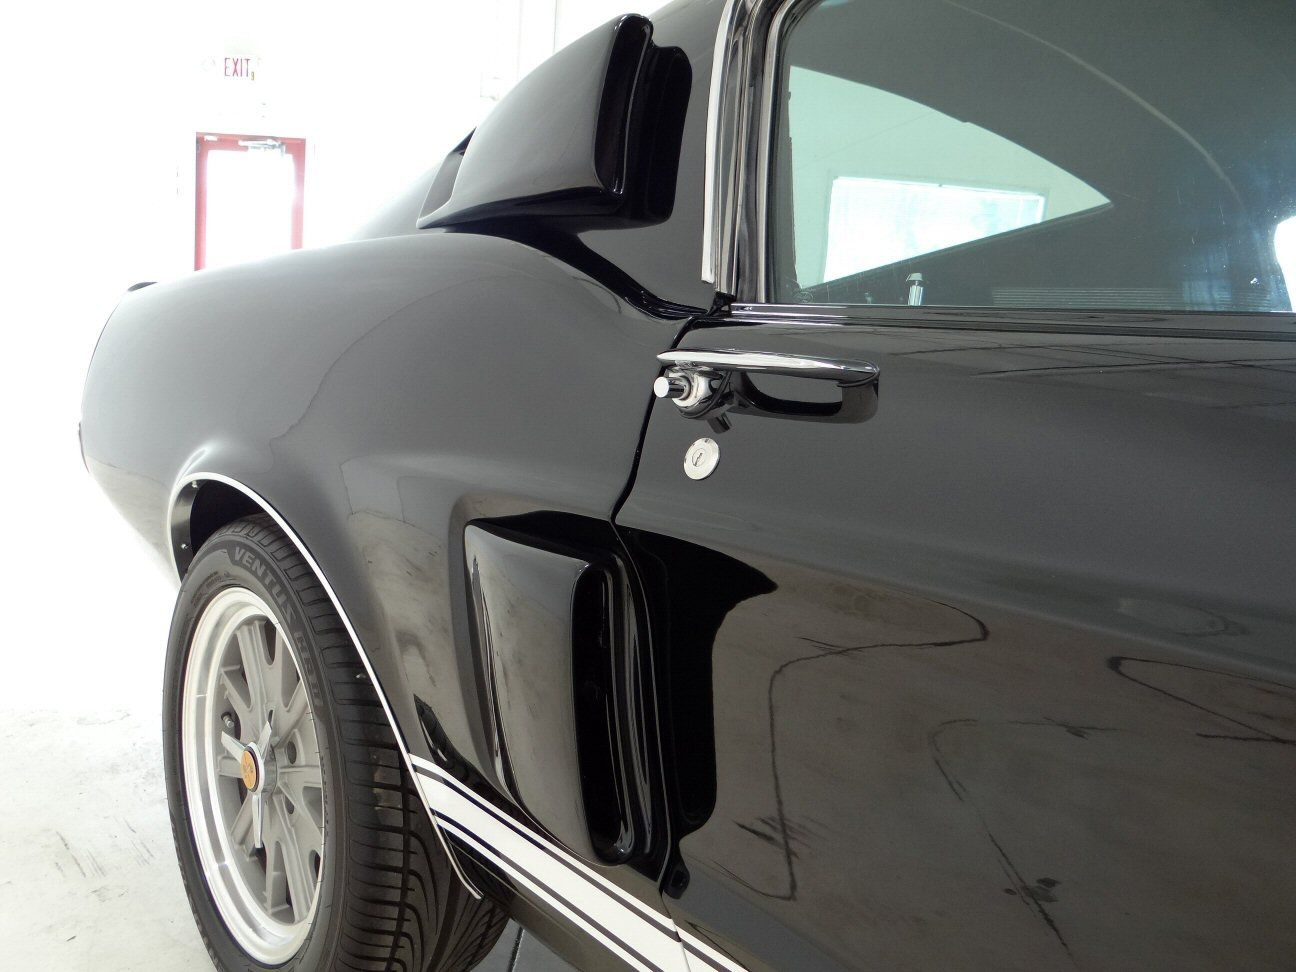 Detail of side vents on the 1967 shelby mustang gt500